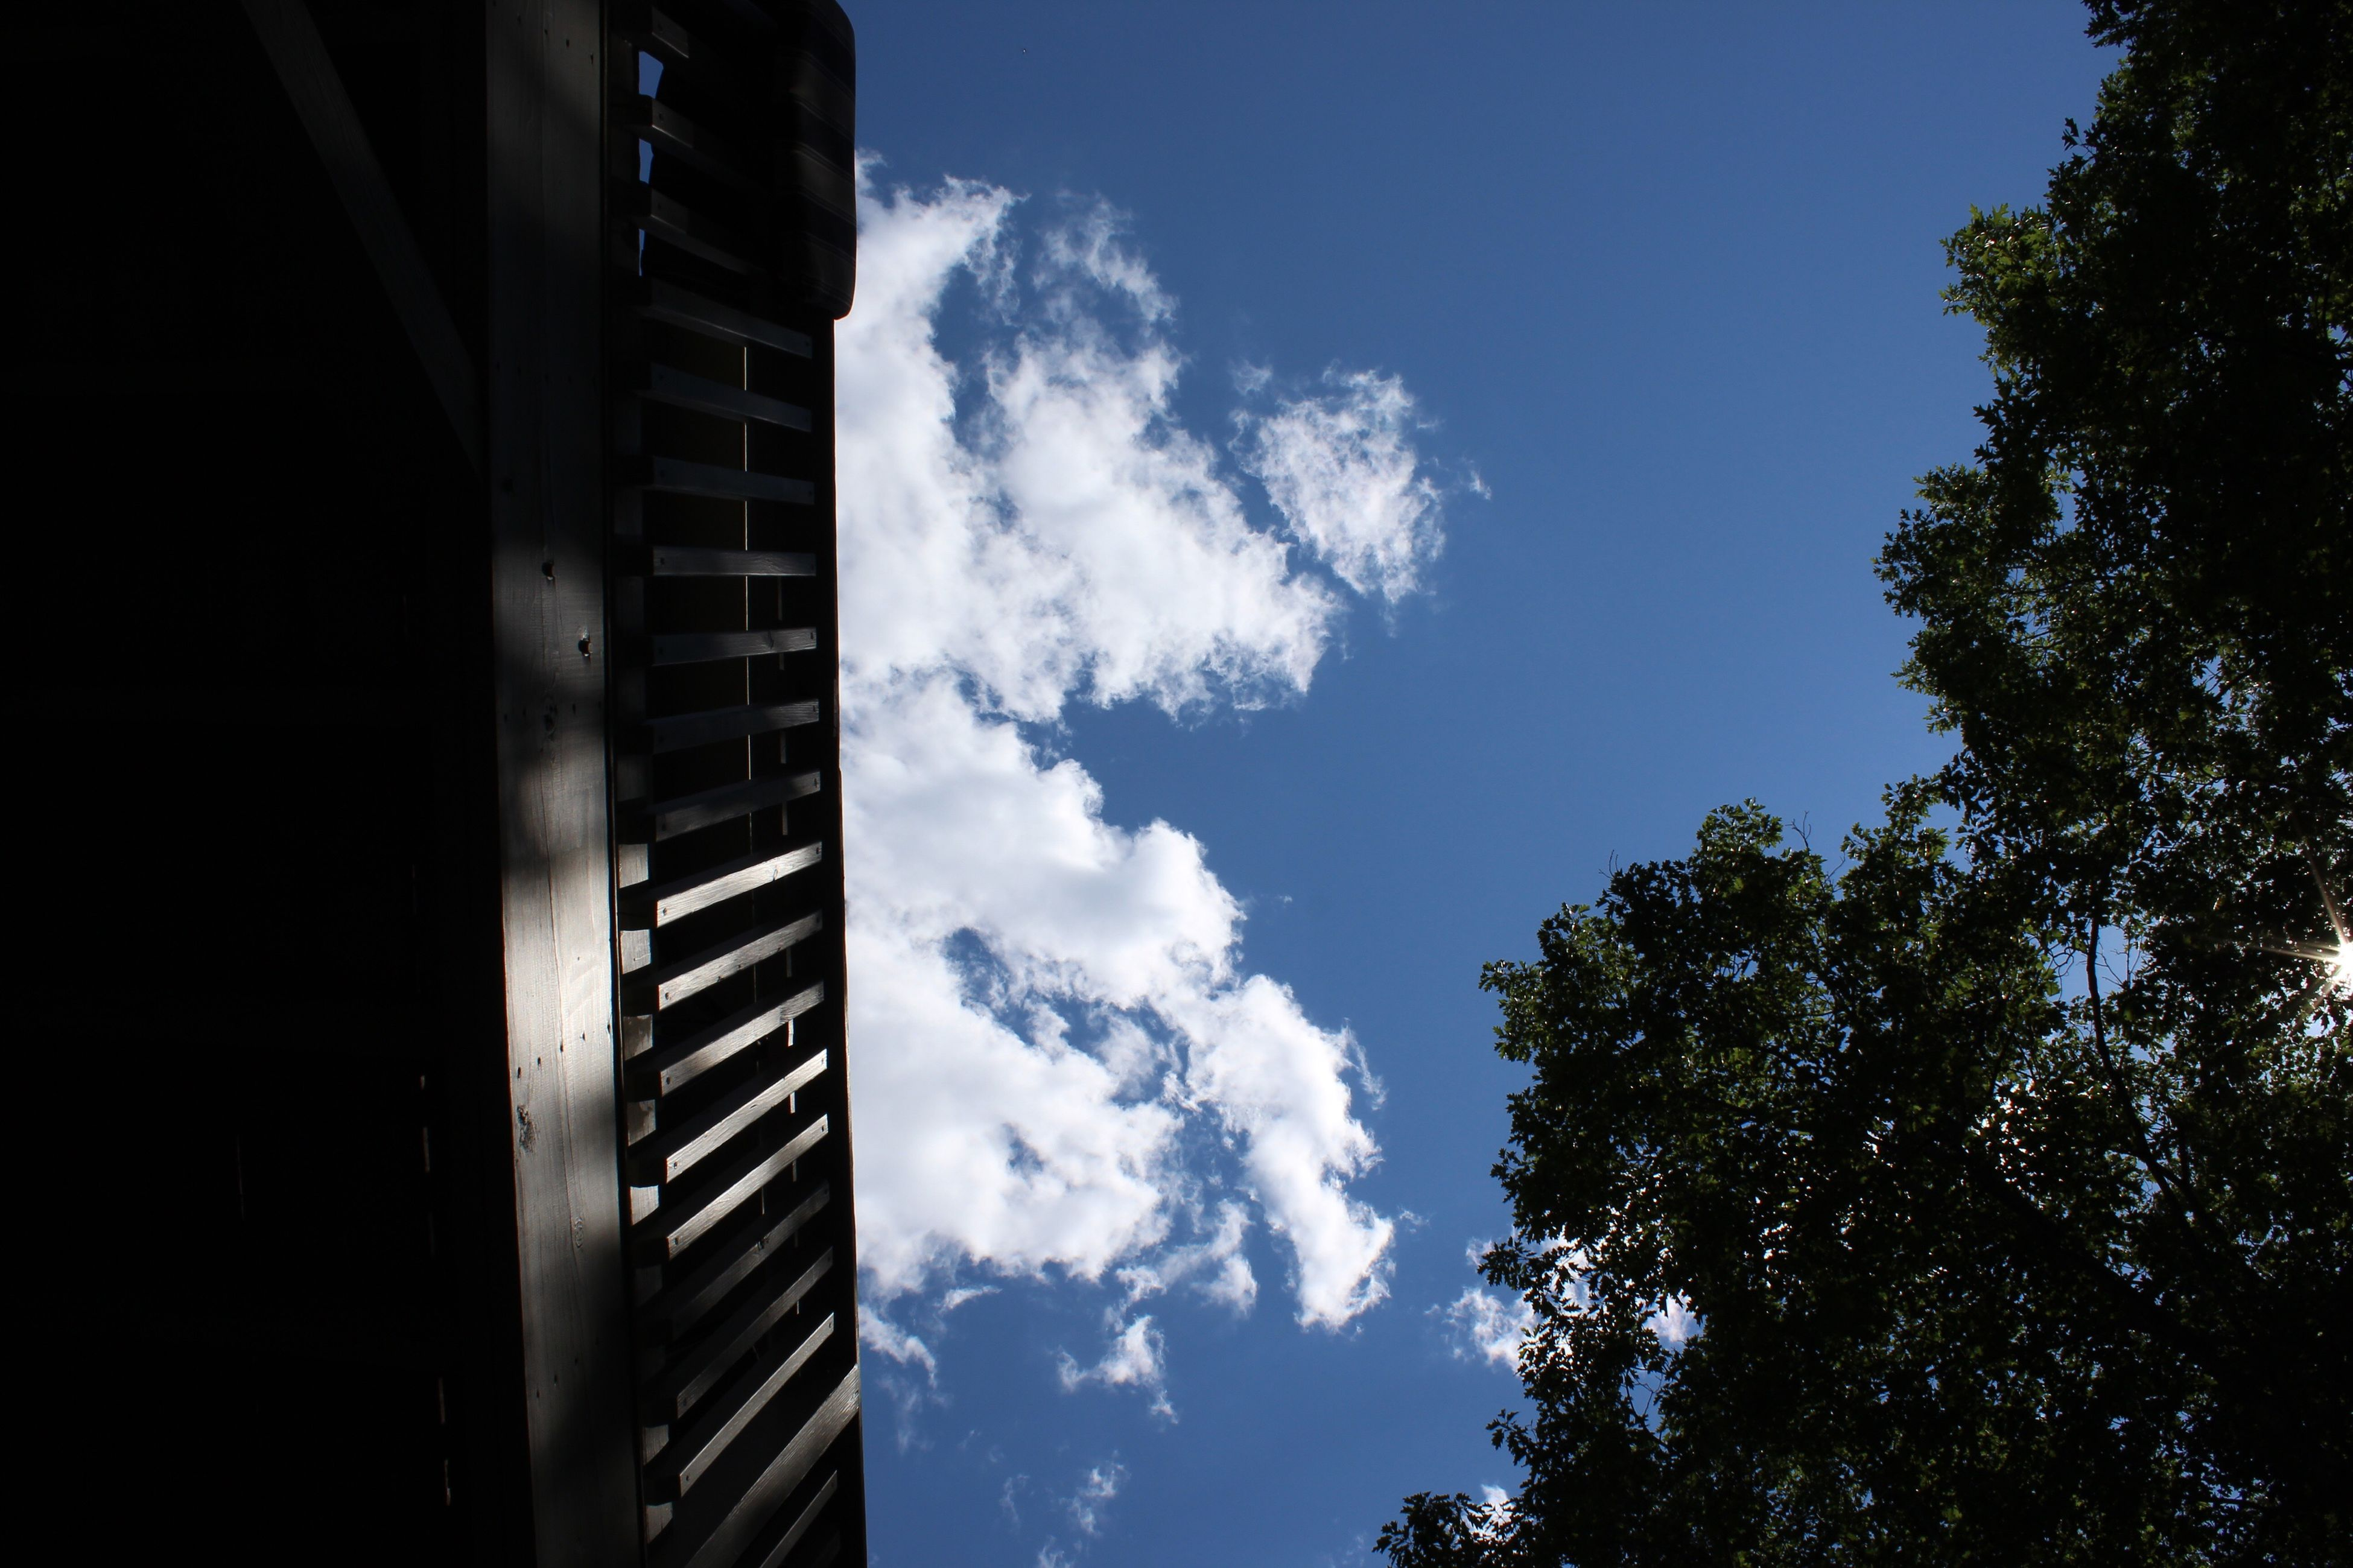 sky, low angle view, cloud - sky, architecture, day, no people, built structure, tree, sunlight, outdoors, nature